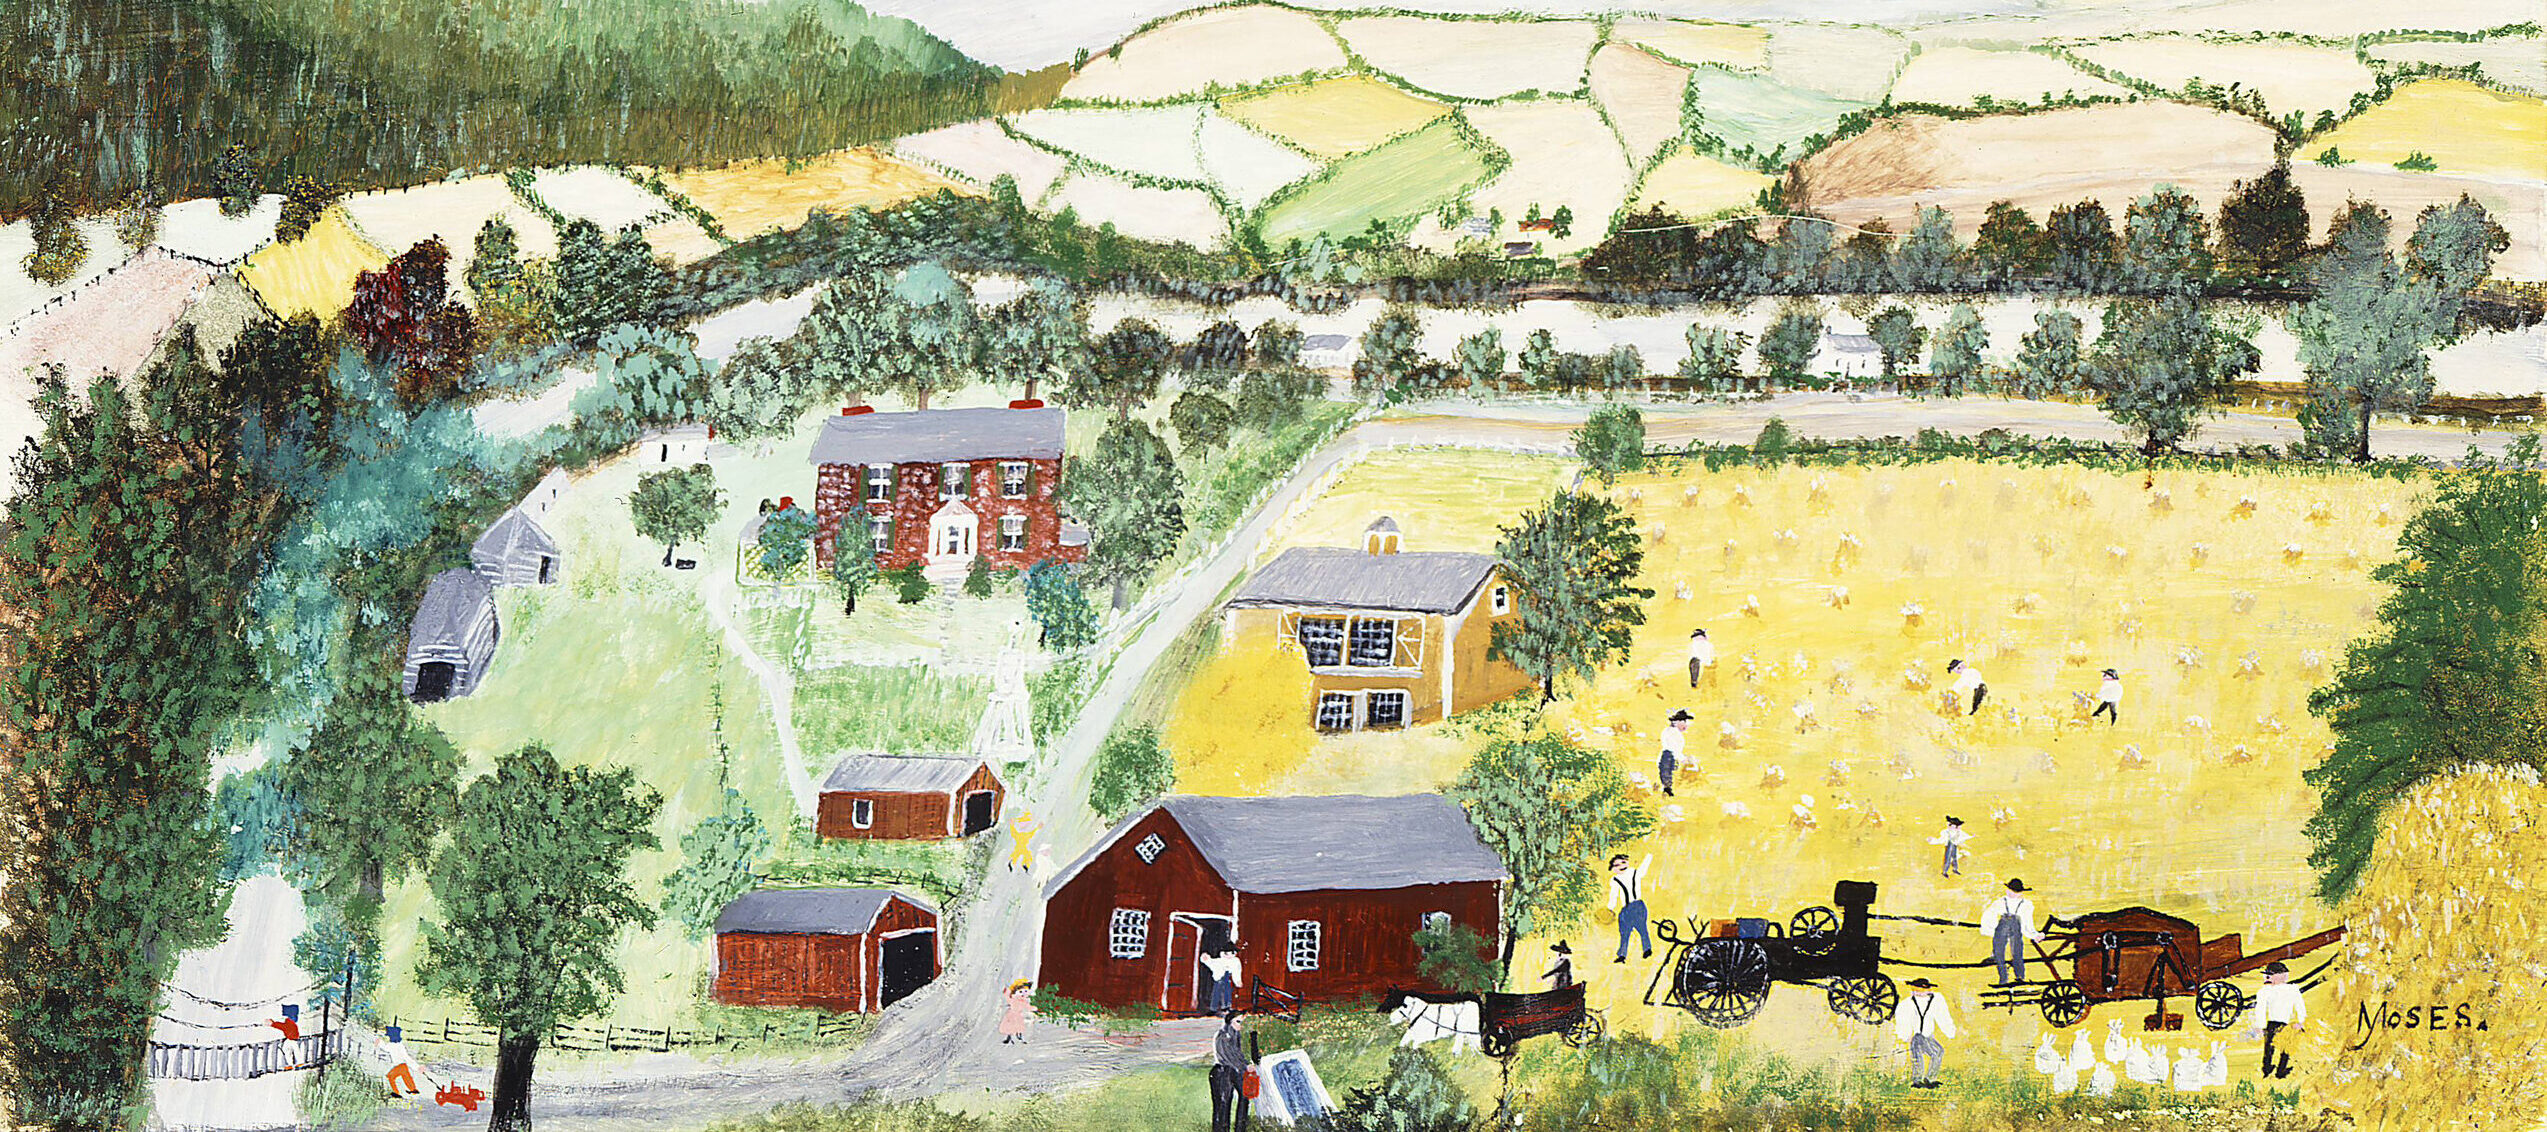 Bucolic landscape rendered in a naive, folk-style of painting. The horizontal composition features a patchwork of yellow and green fields on rolling hills set against a blue-gray sky. In the foreground study farm buildings surround small figures tending to the land.